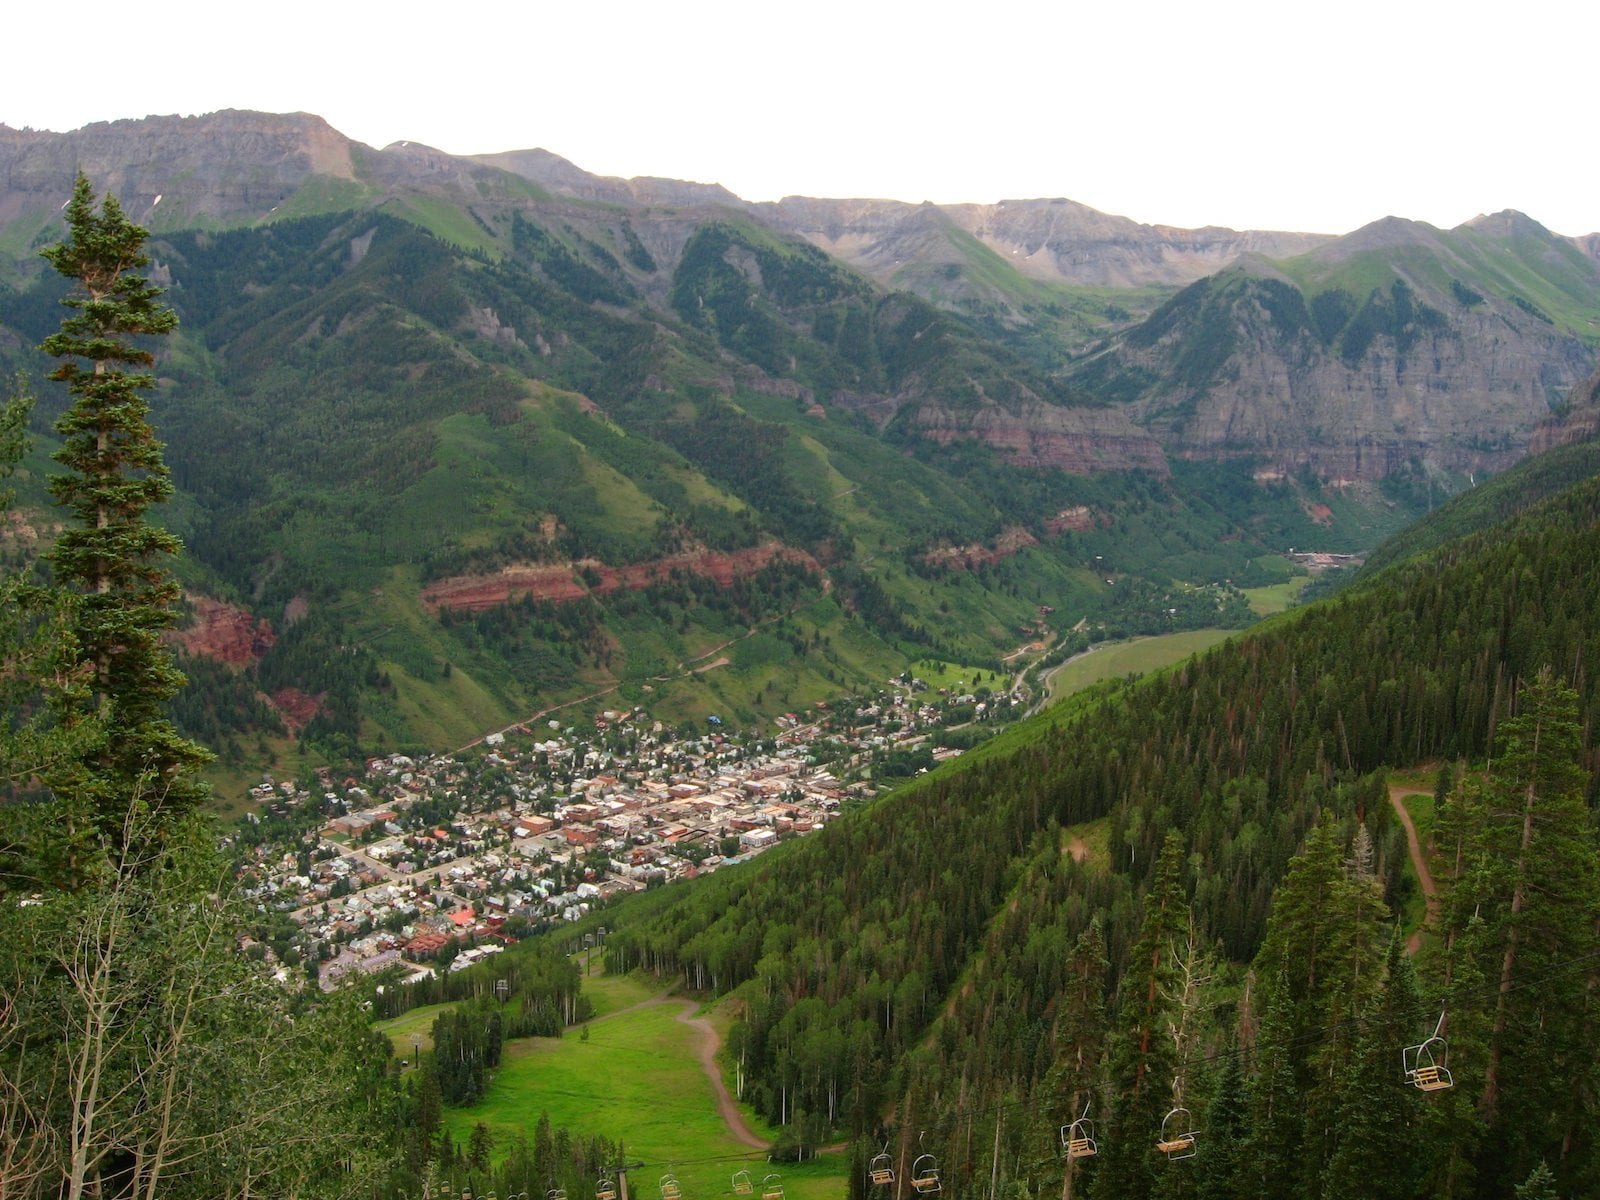 The town of Telluride, CO